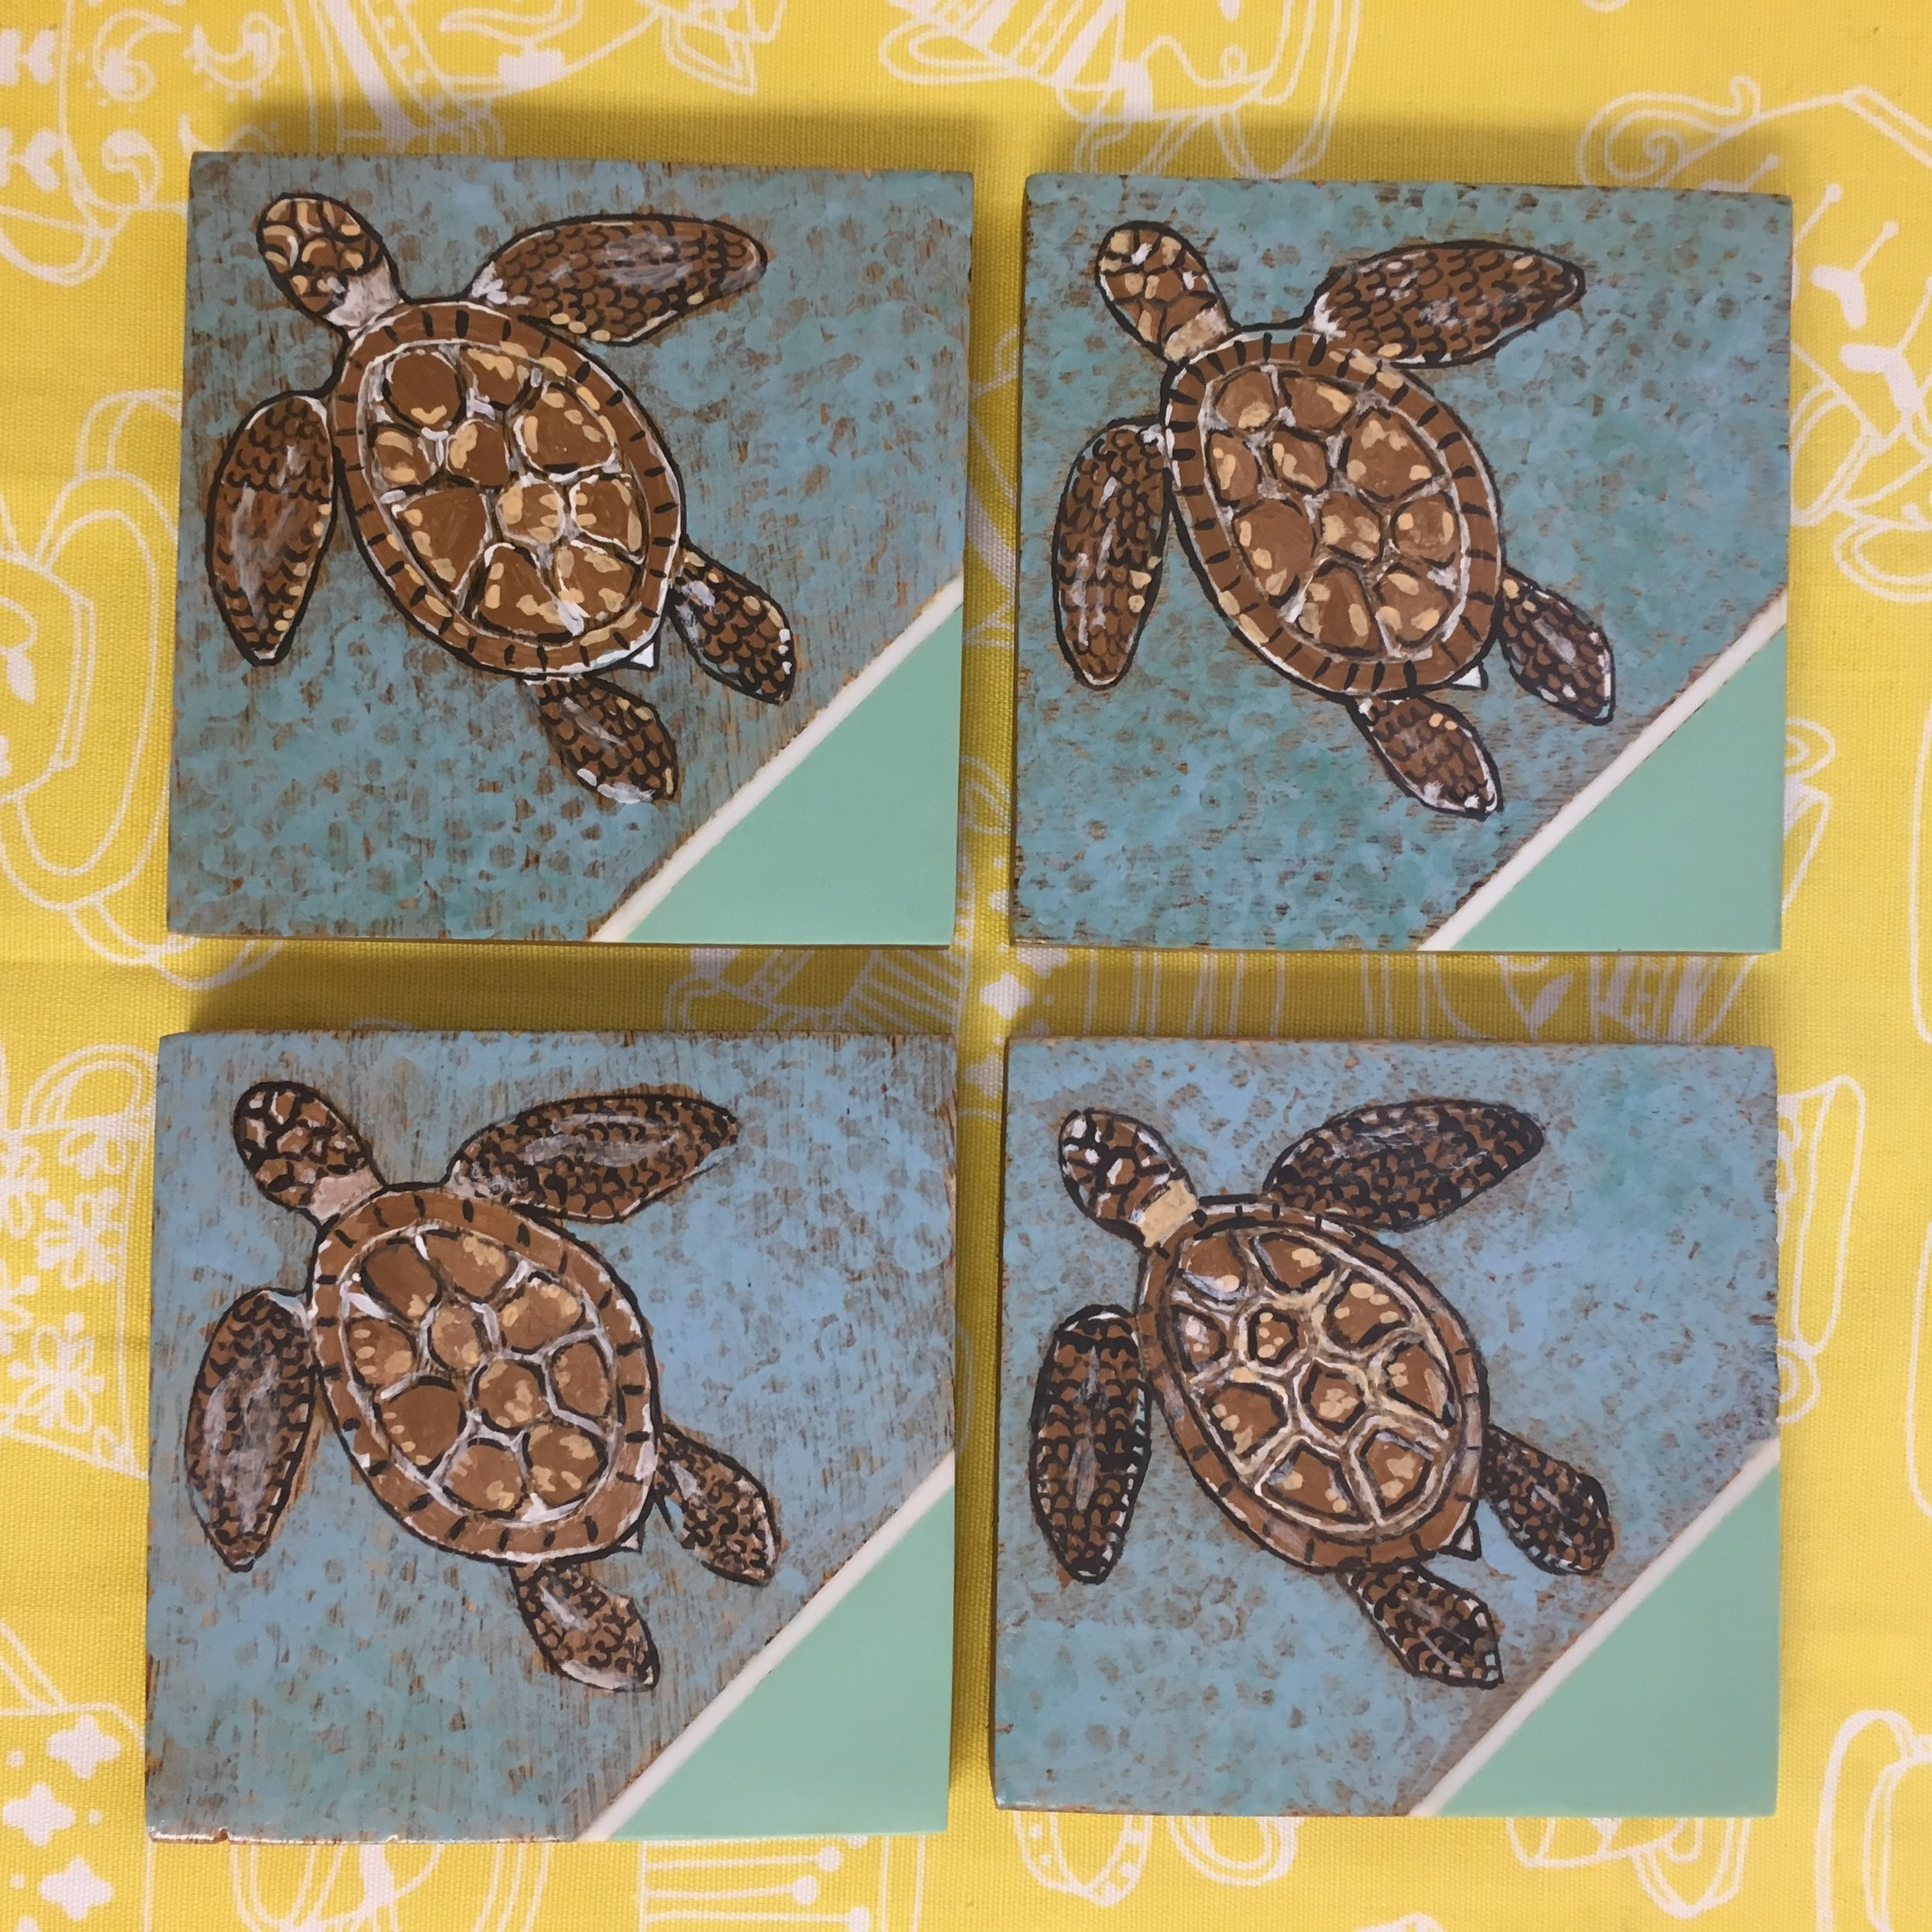 4.5 inch Sea Turtle Coaster Set - Keeping your table protected against moisture from glasses never looked so pretty! This set of four Sea Turtle coasters features a decorative sea foam and white inset on wood coasters with skid proof feet. Painted with milk paint and sealed with hard coat. These coasters are for decorative purposes only and not suitable for direct food contact. Wipe clean with a damp cloth, do not soak or put in the dishwasher.$25, plus sales tax and shipping